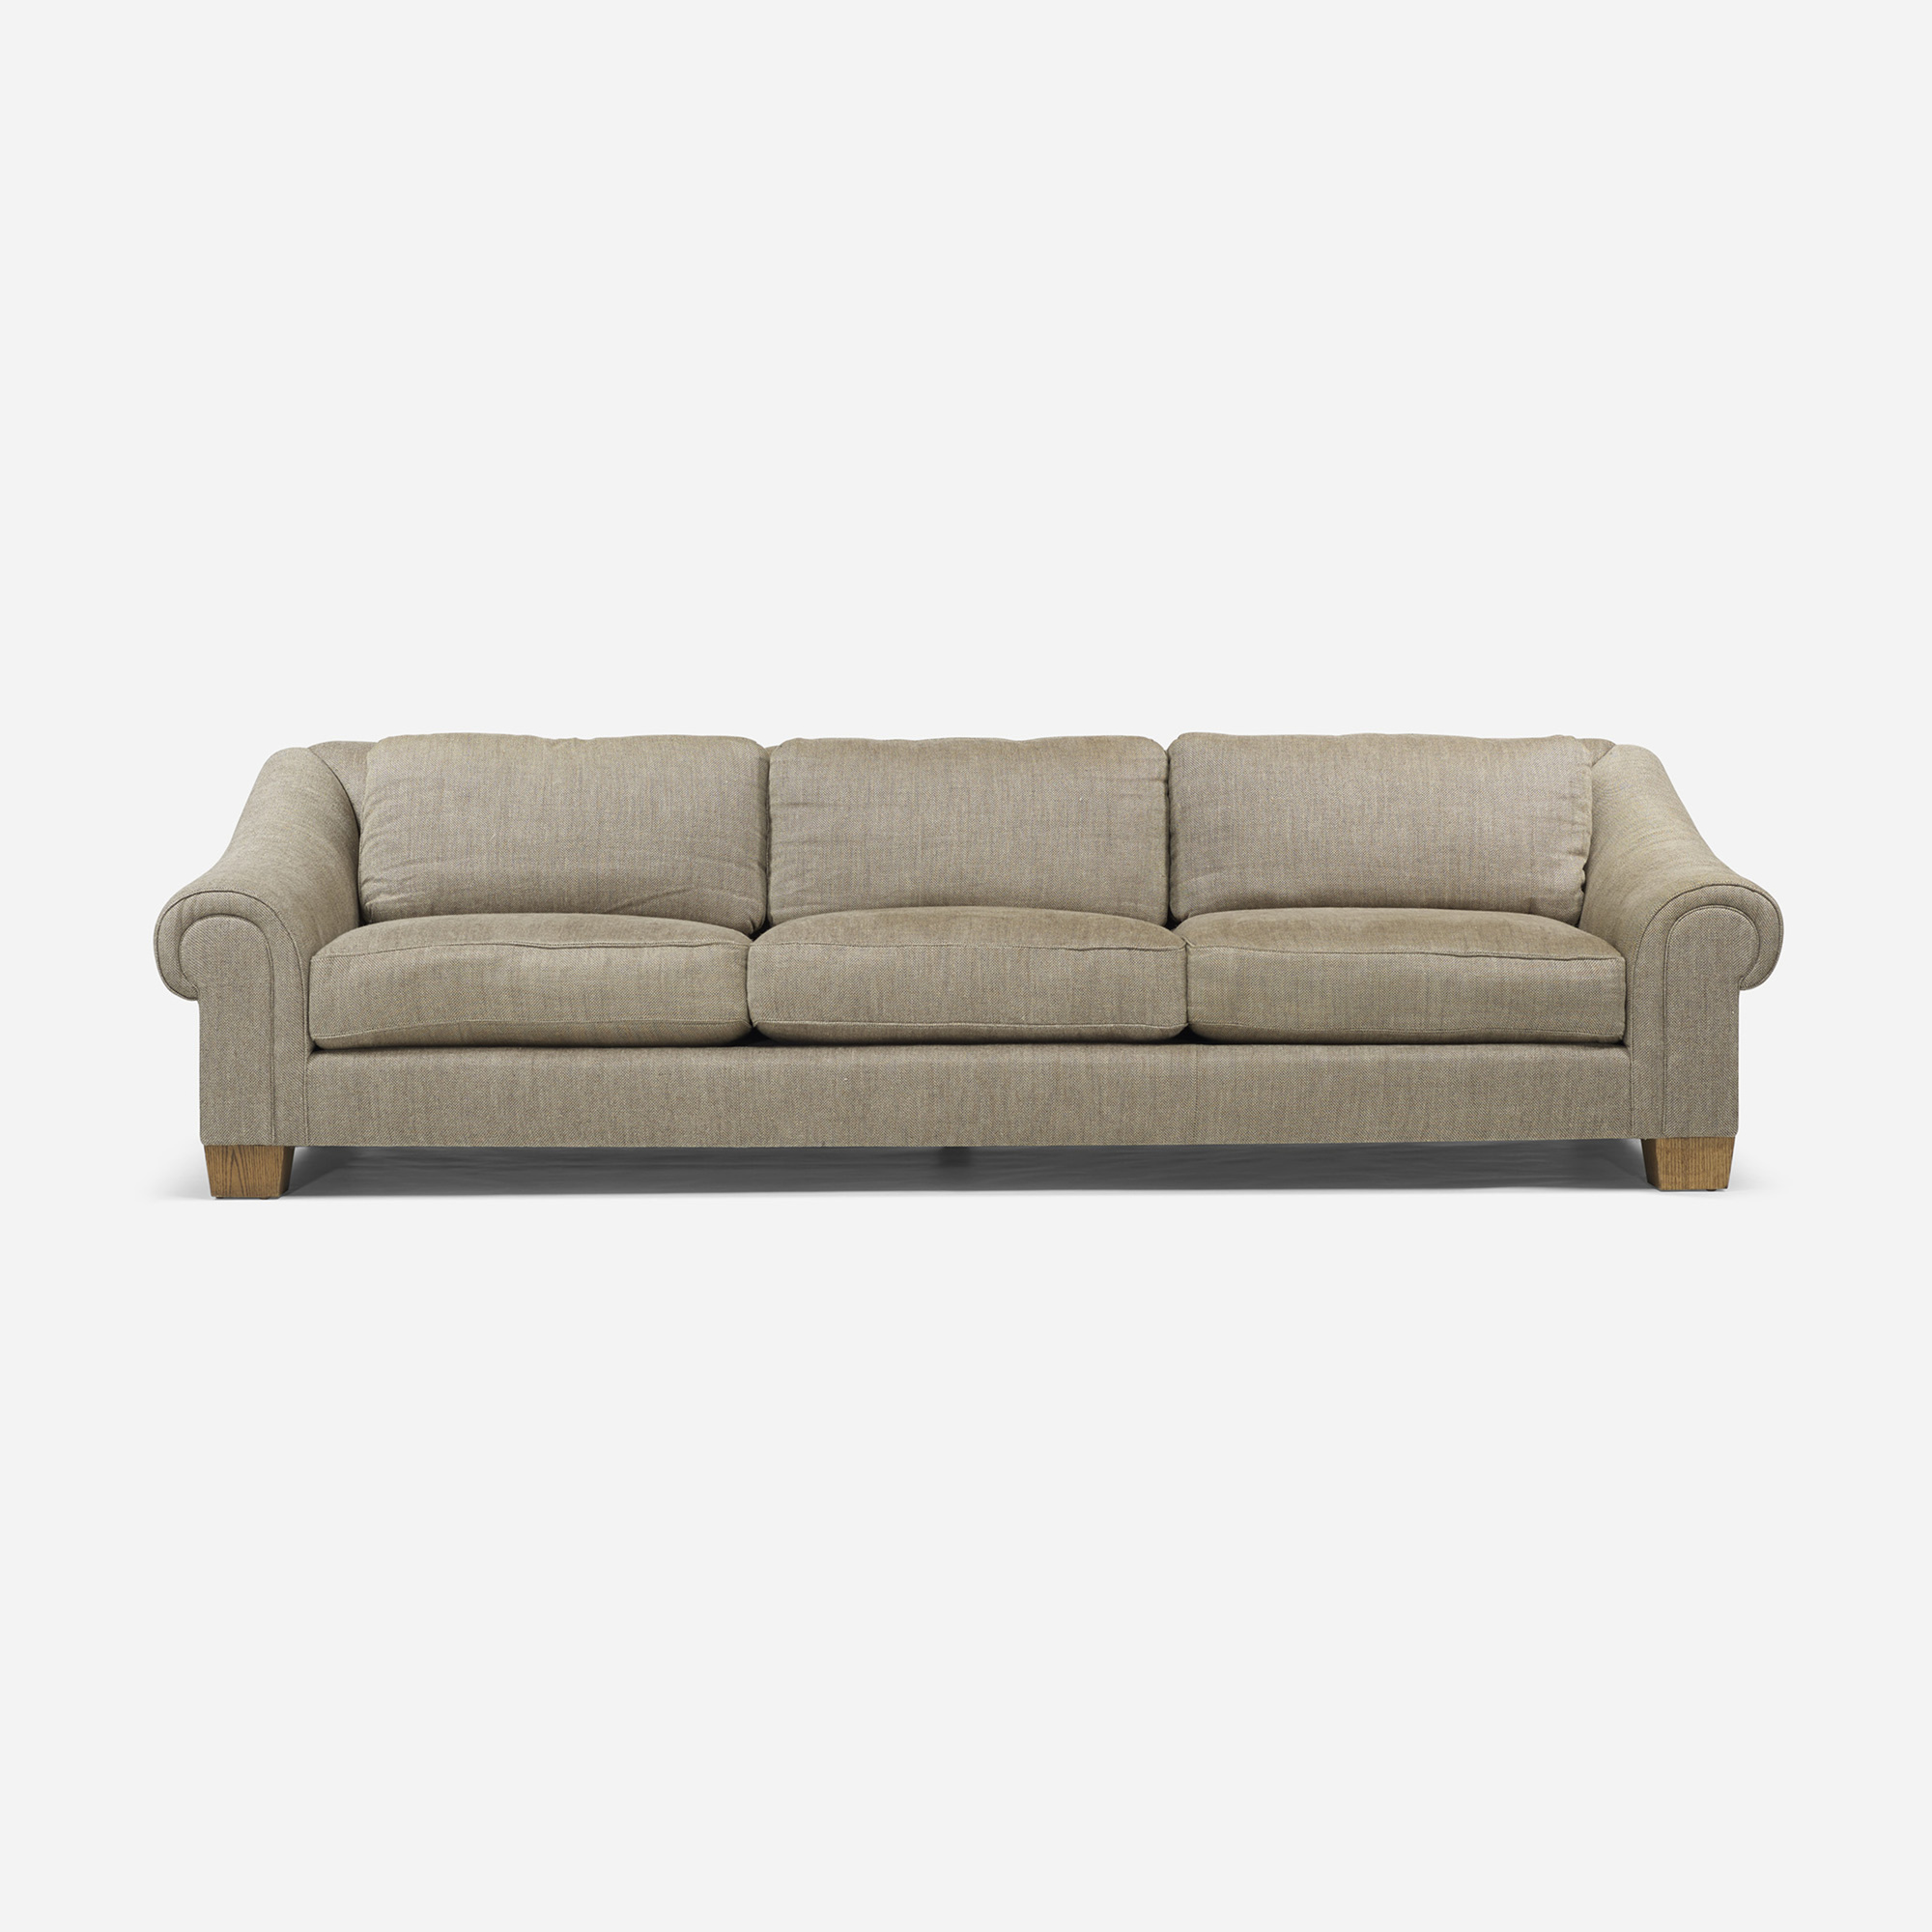 215: Contemporary / sofa (1 of 2)